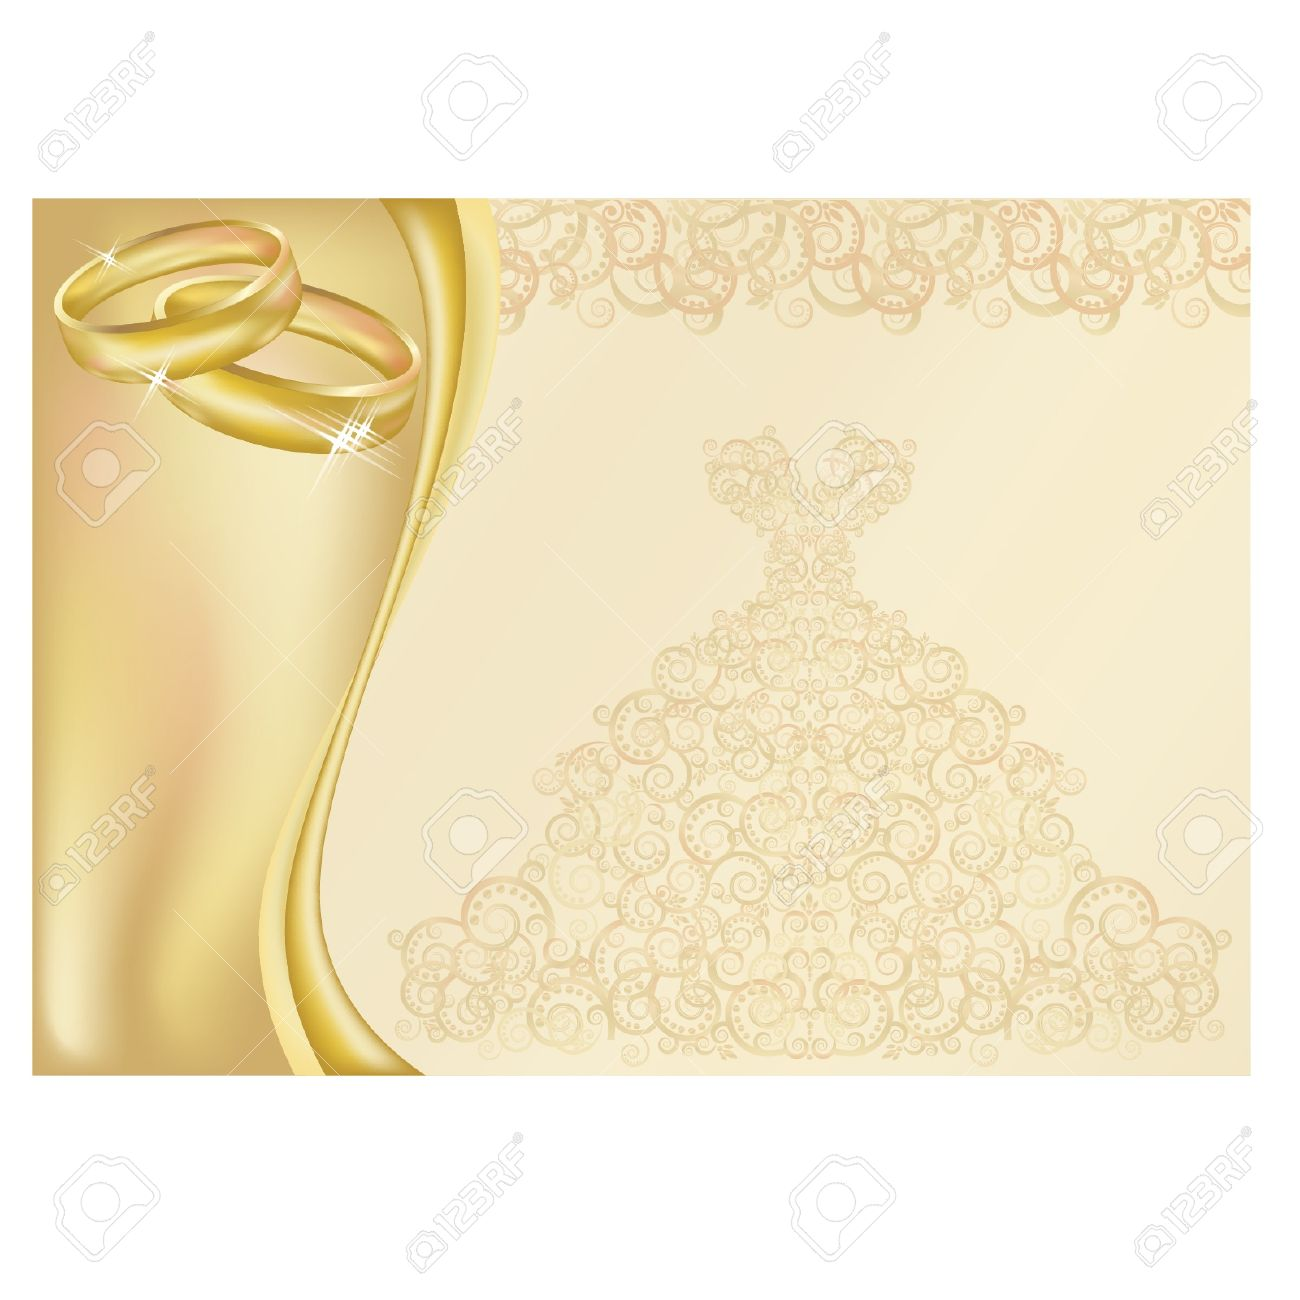 Wedding invitation card with two golden rings royalty free cliparts vector wedding invitation card with two golden rings stopboris Choice Image